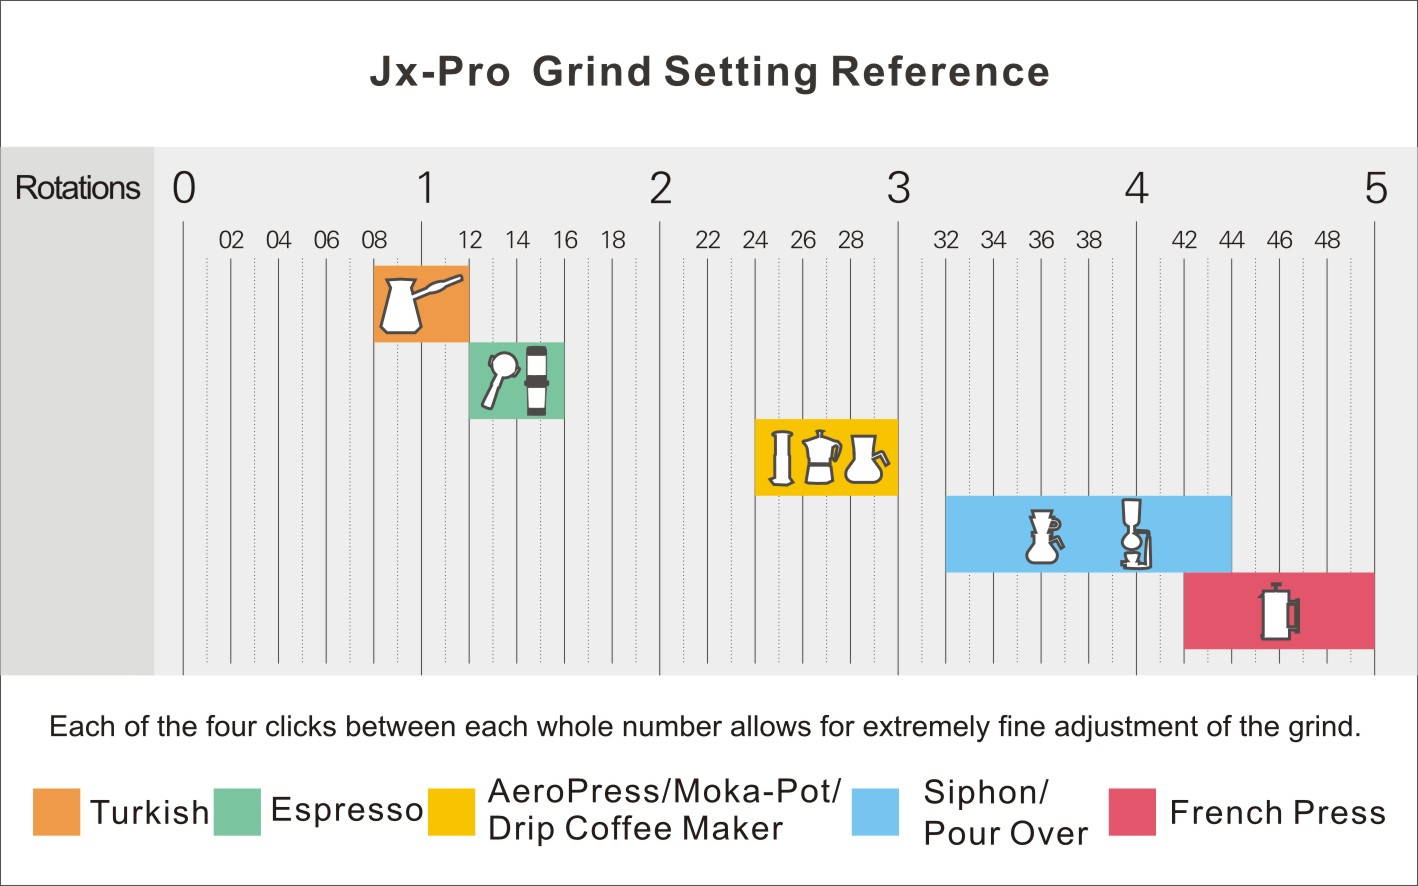 JX-Pro-Grind-Setting-Reference-20200909.jpg